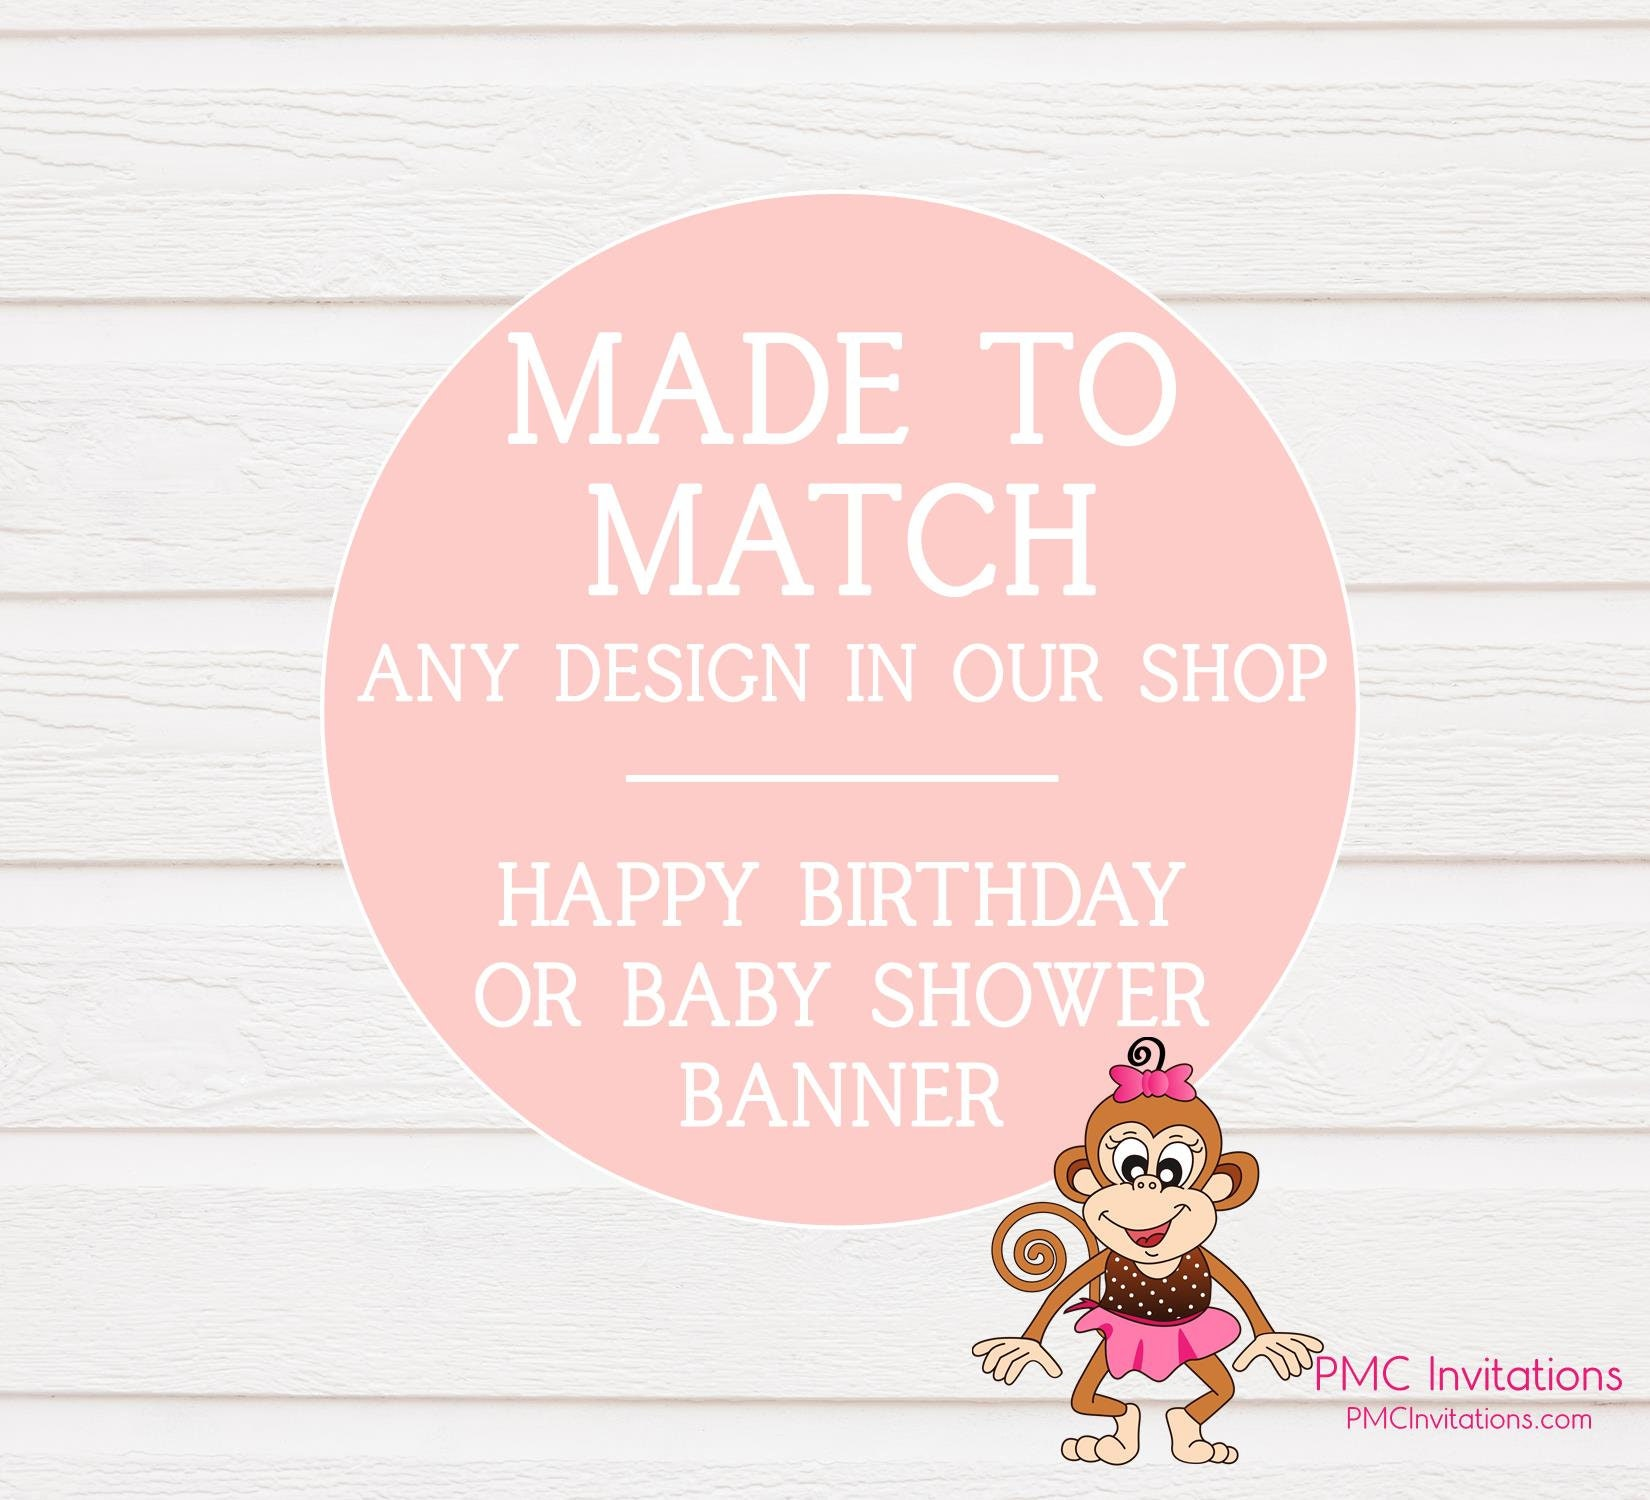 Banner Happy Birthday Or Baby Shower Match Any Style In